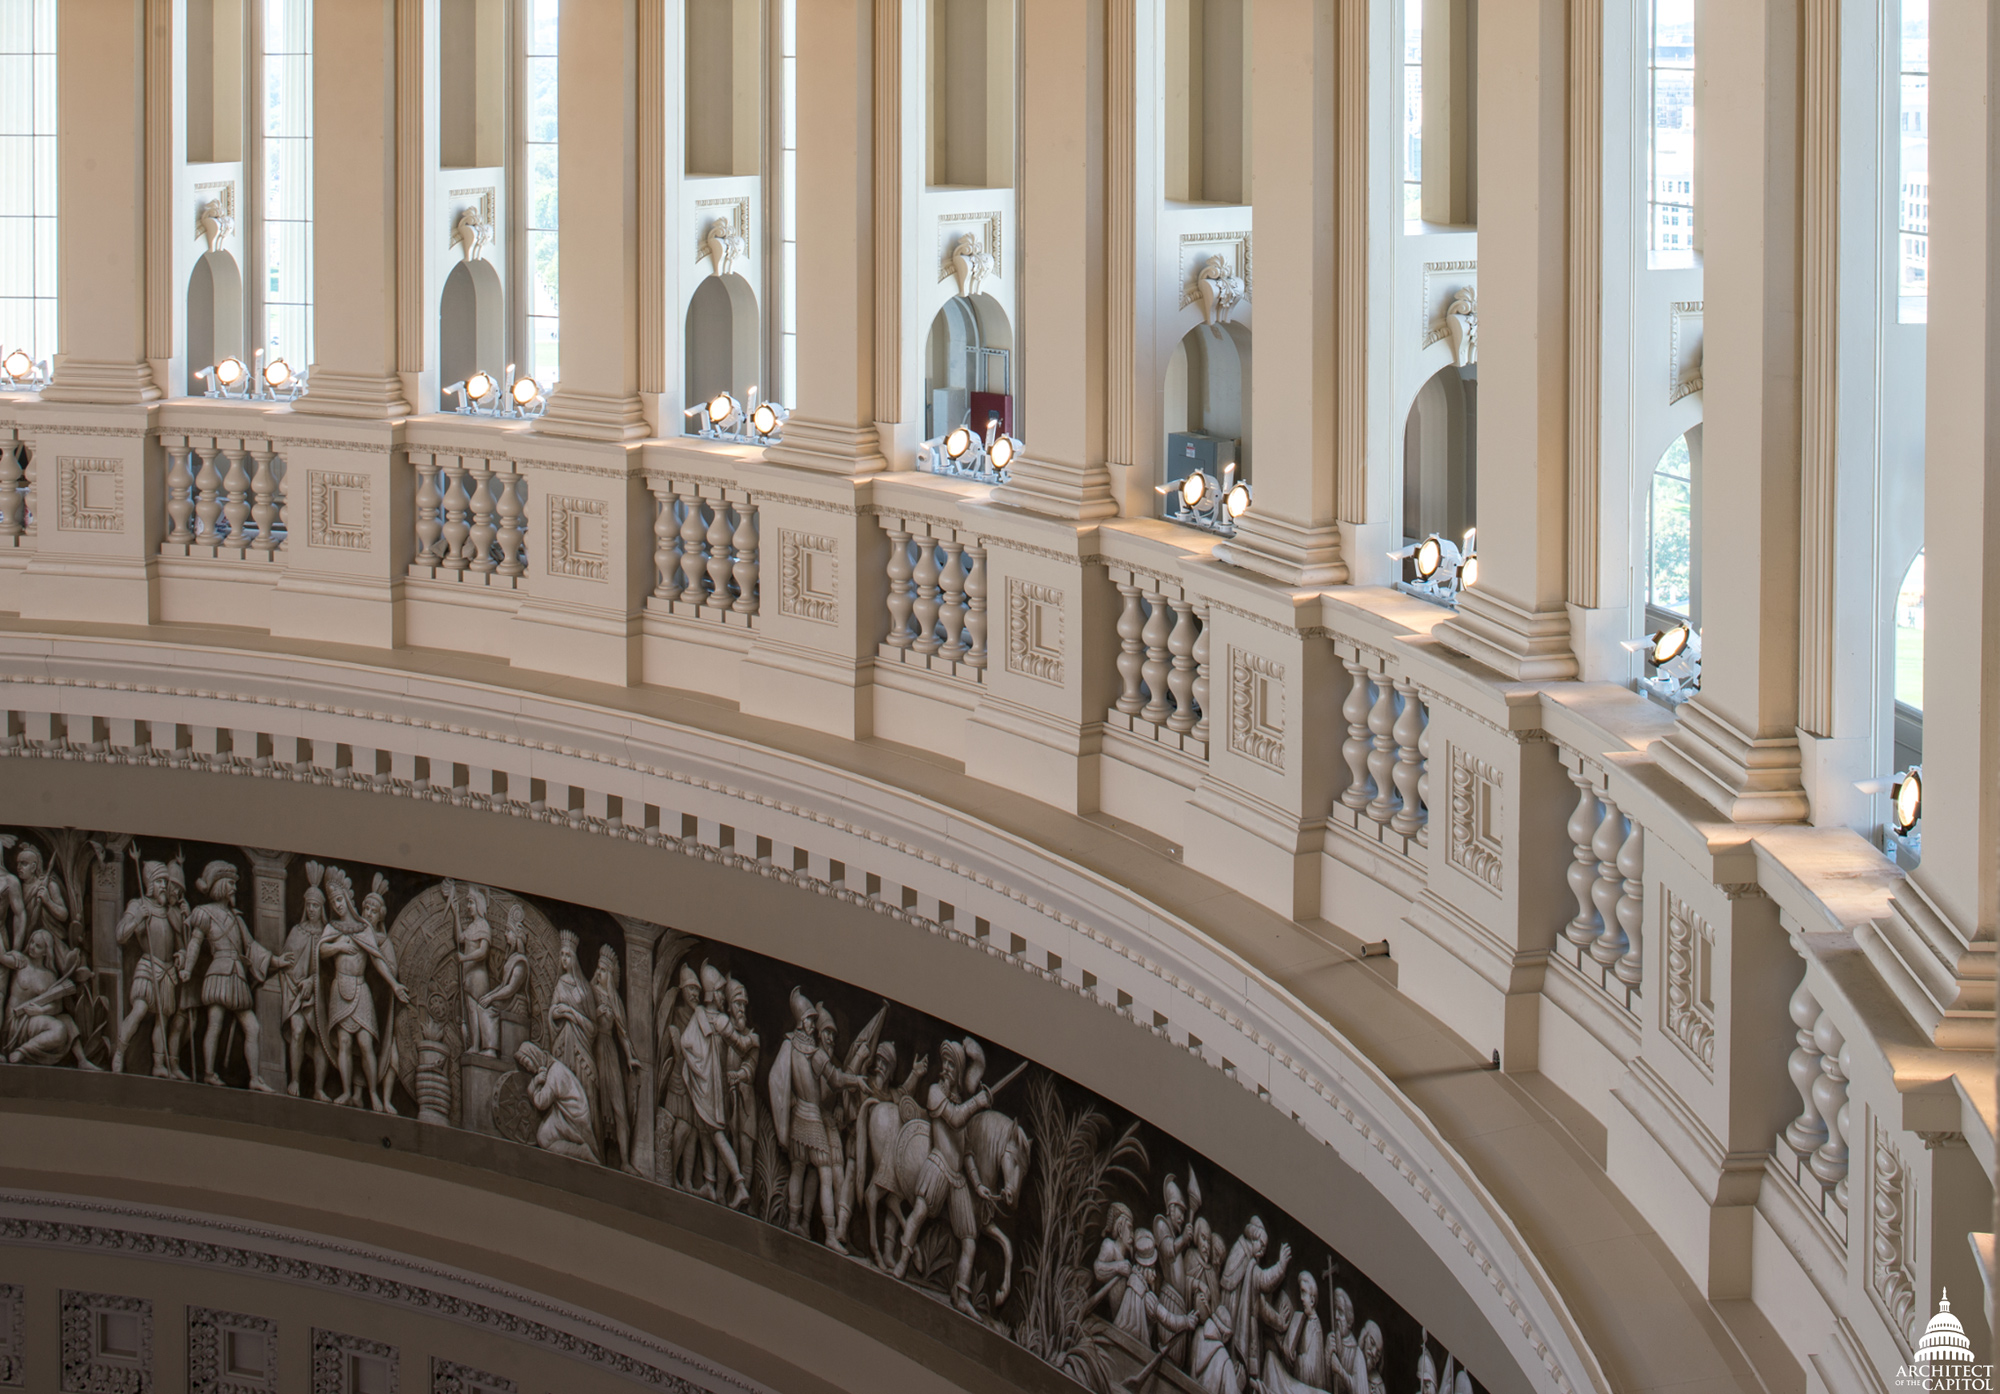 Partial view of the Frieze of American History.